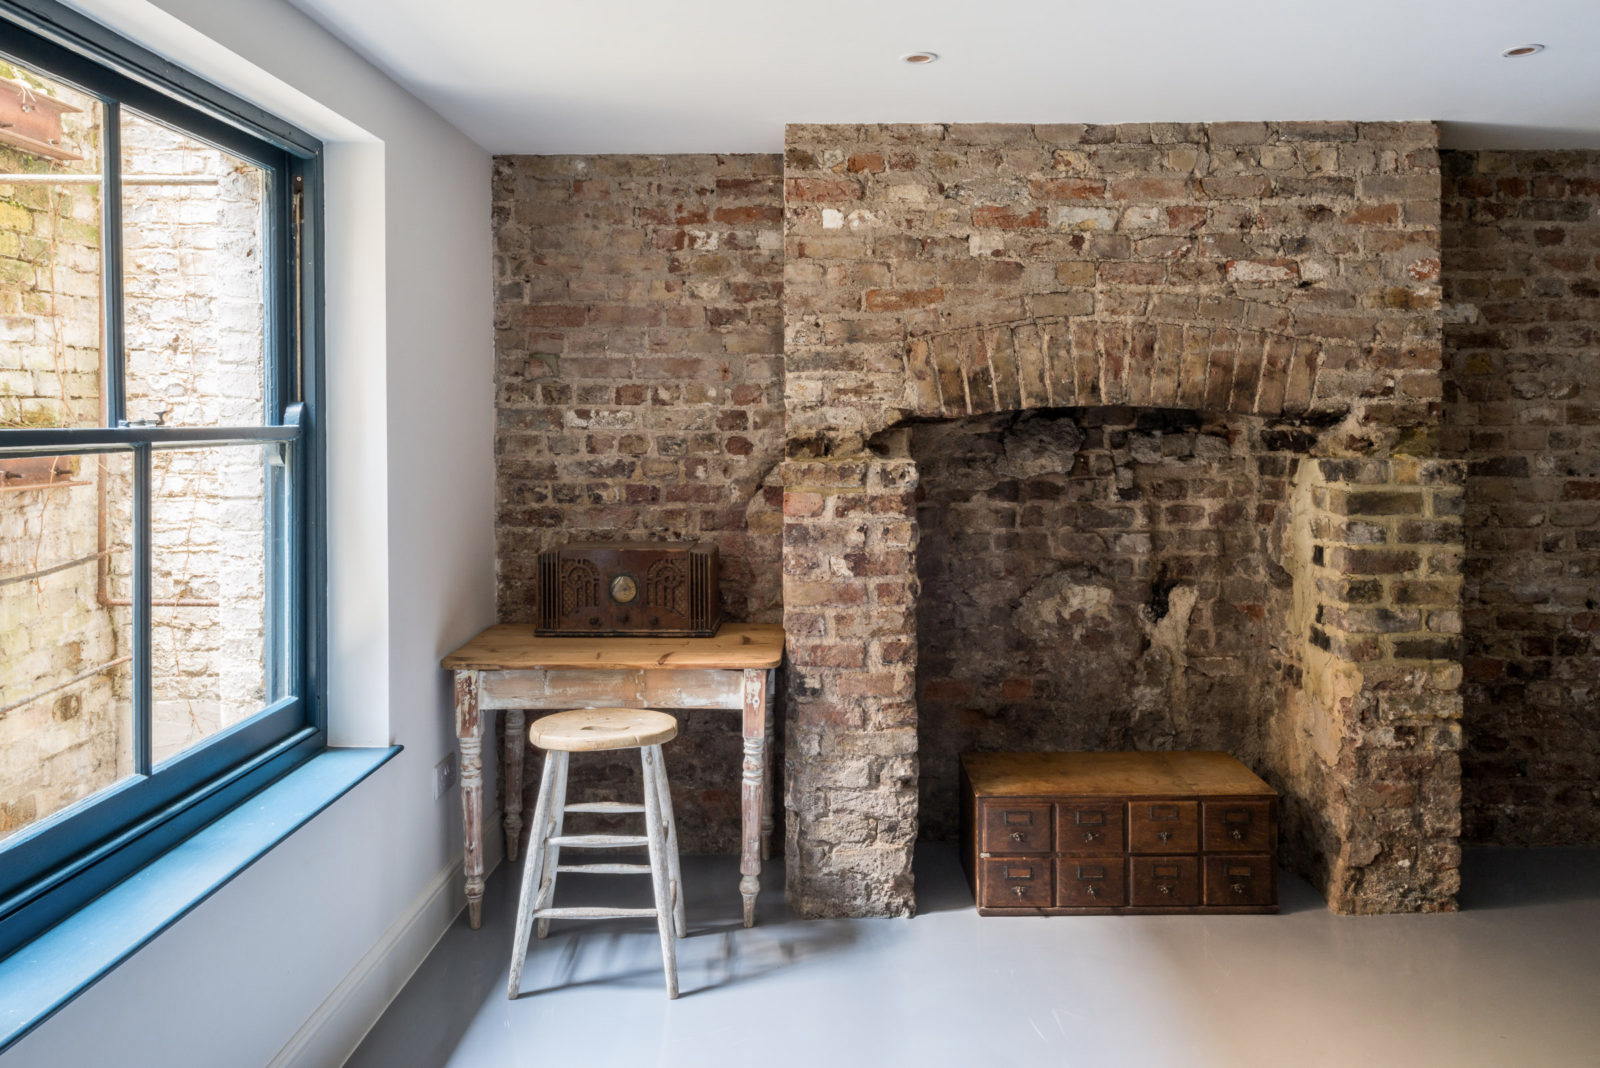 Converted Victorian butcher's for sale in London is decked in period features